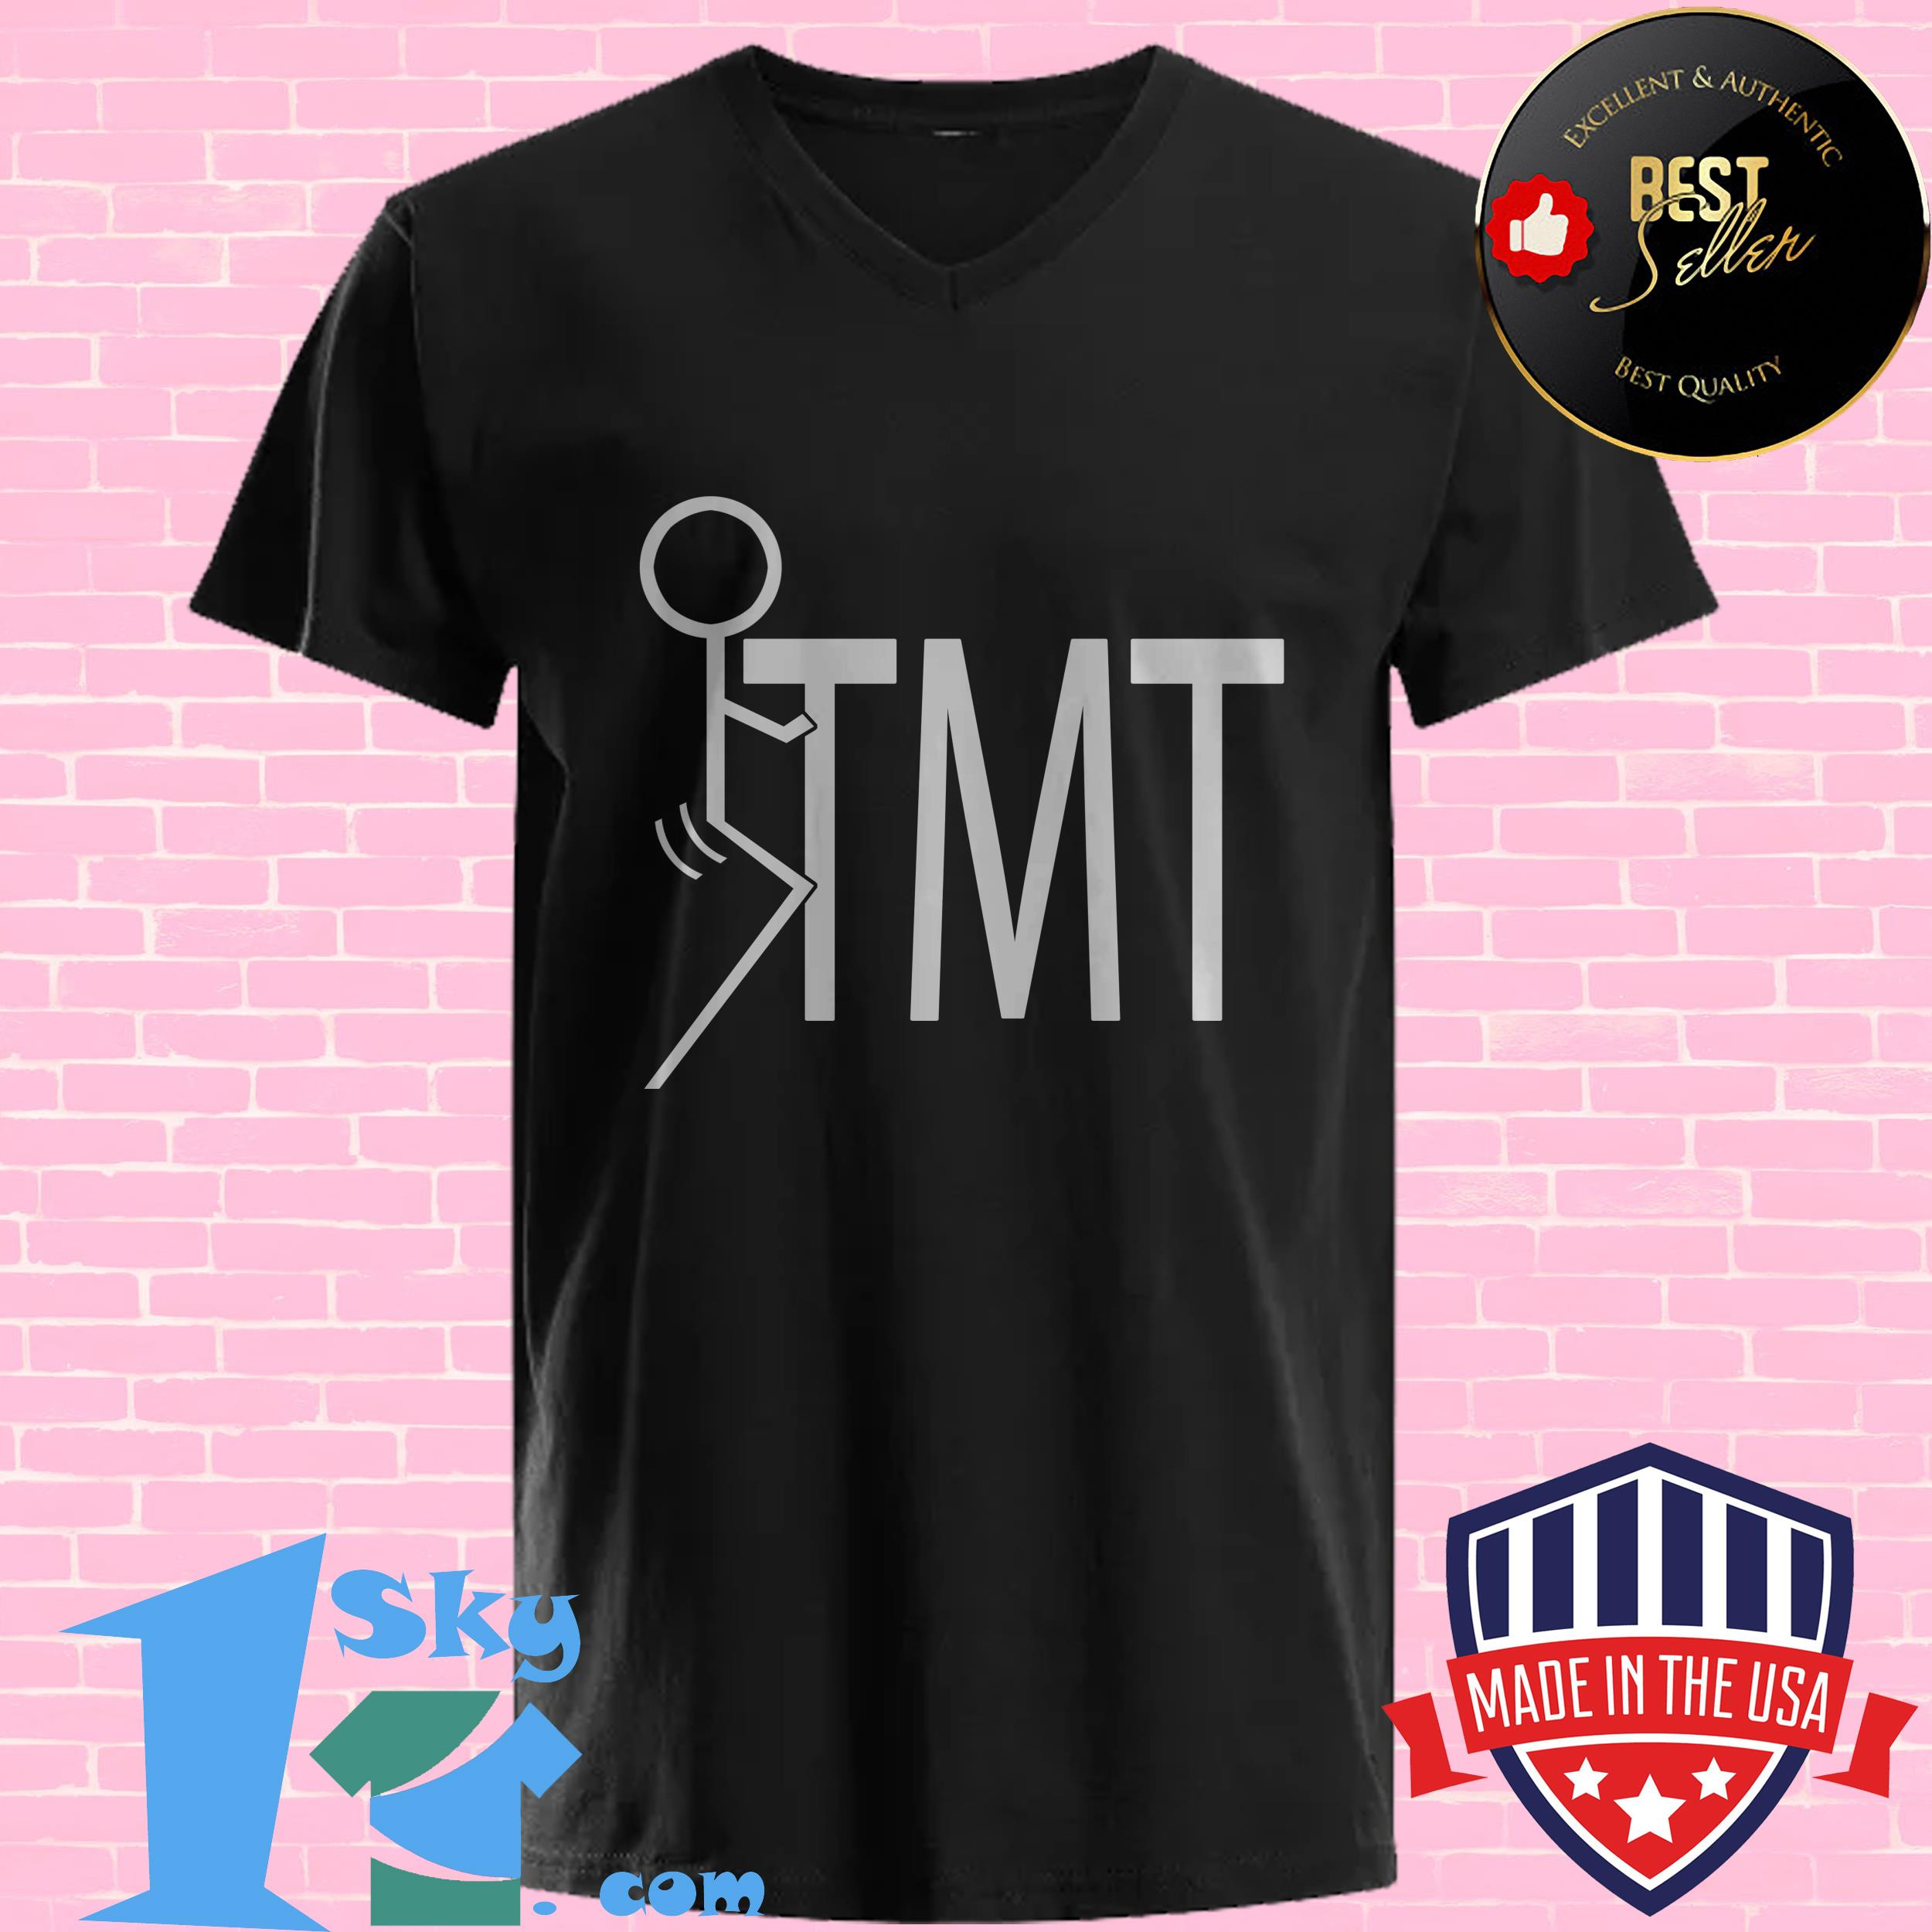 official tmt the money team v neck - Official TMT The Money Team shirt